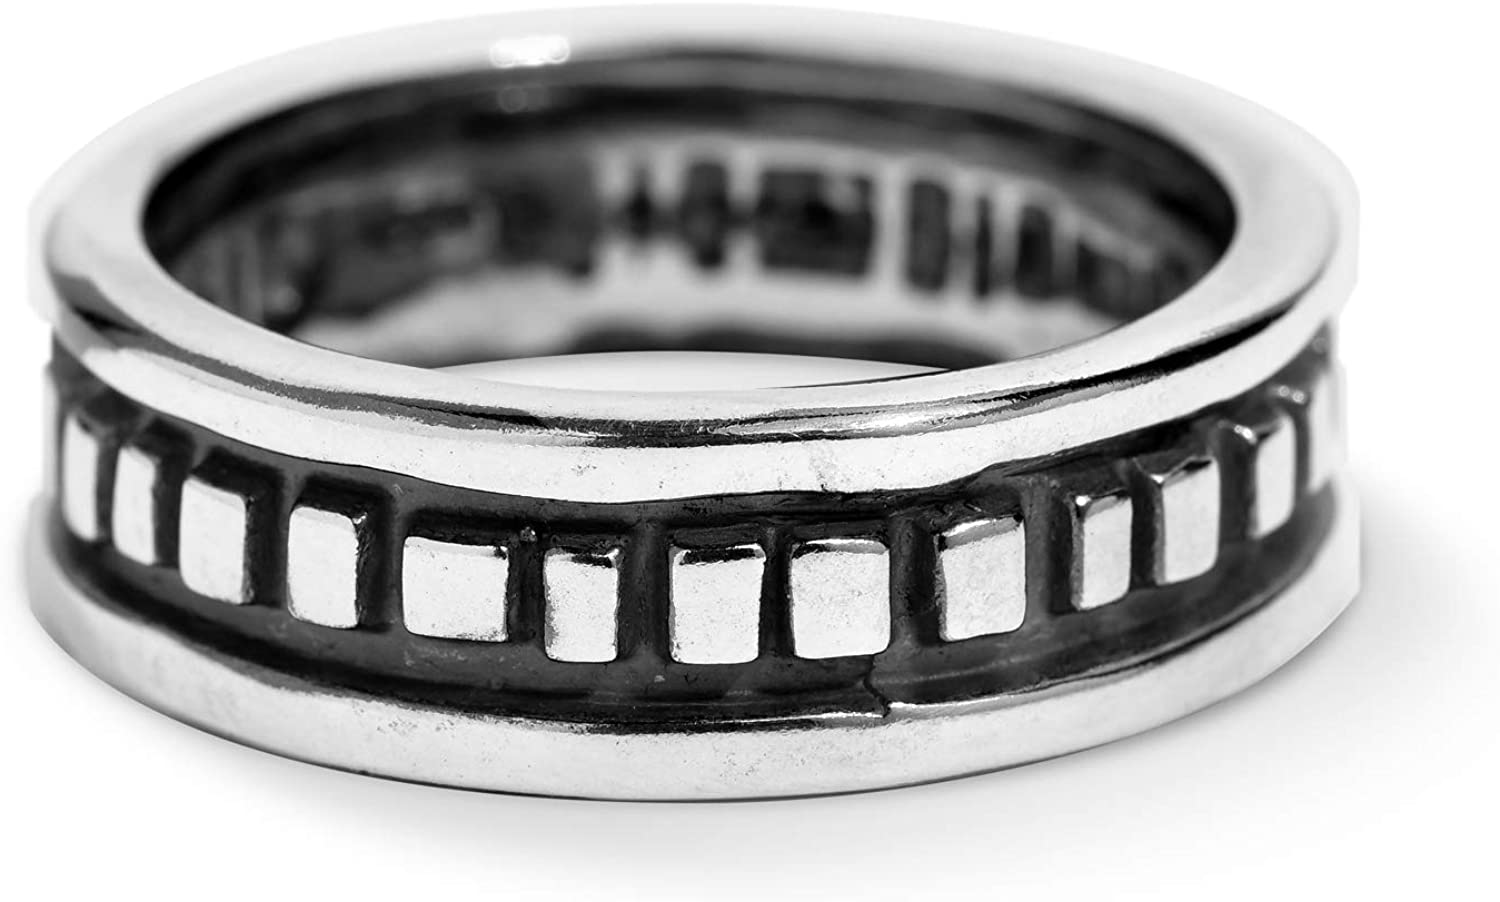 American West Sterling Silver Rectangular Bead Band Ring Size 5 to 13